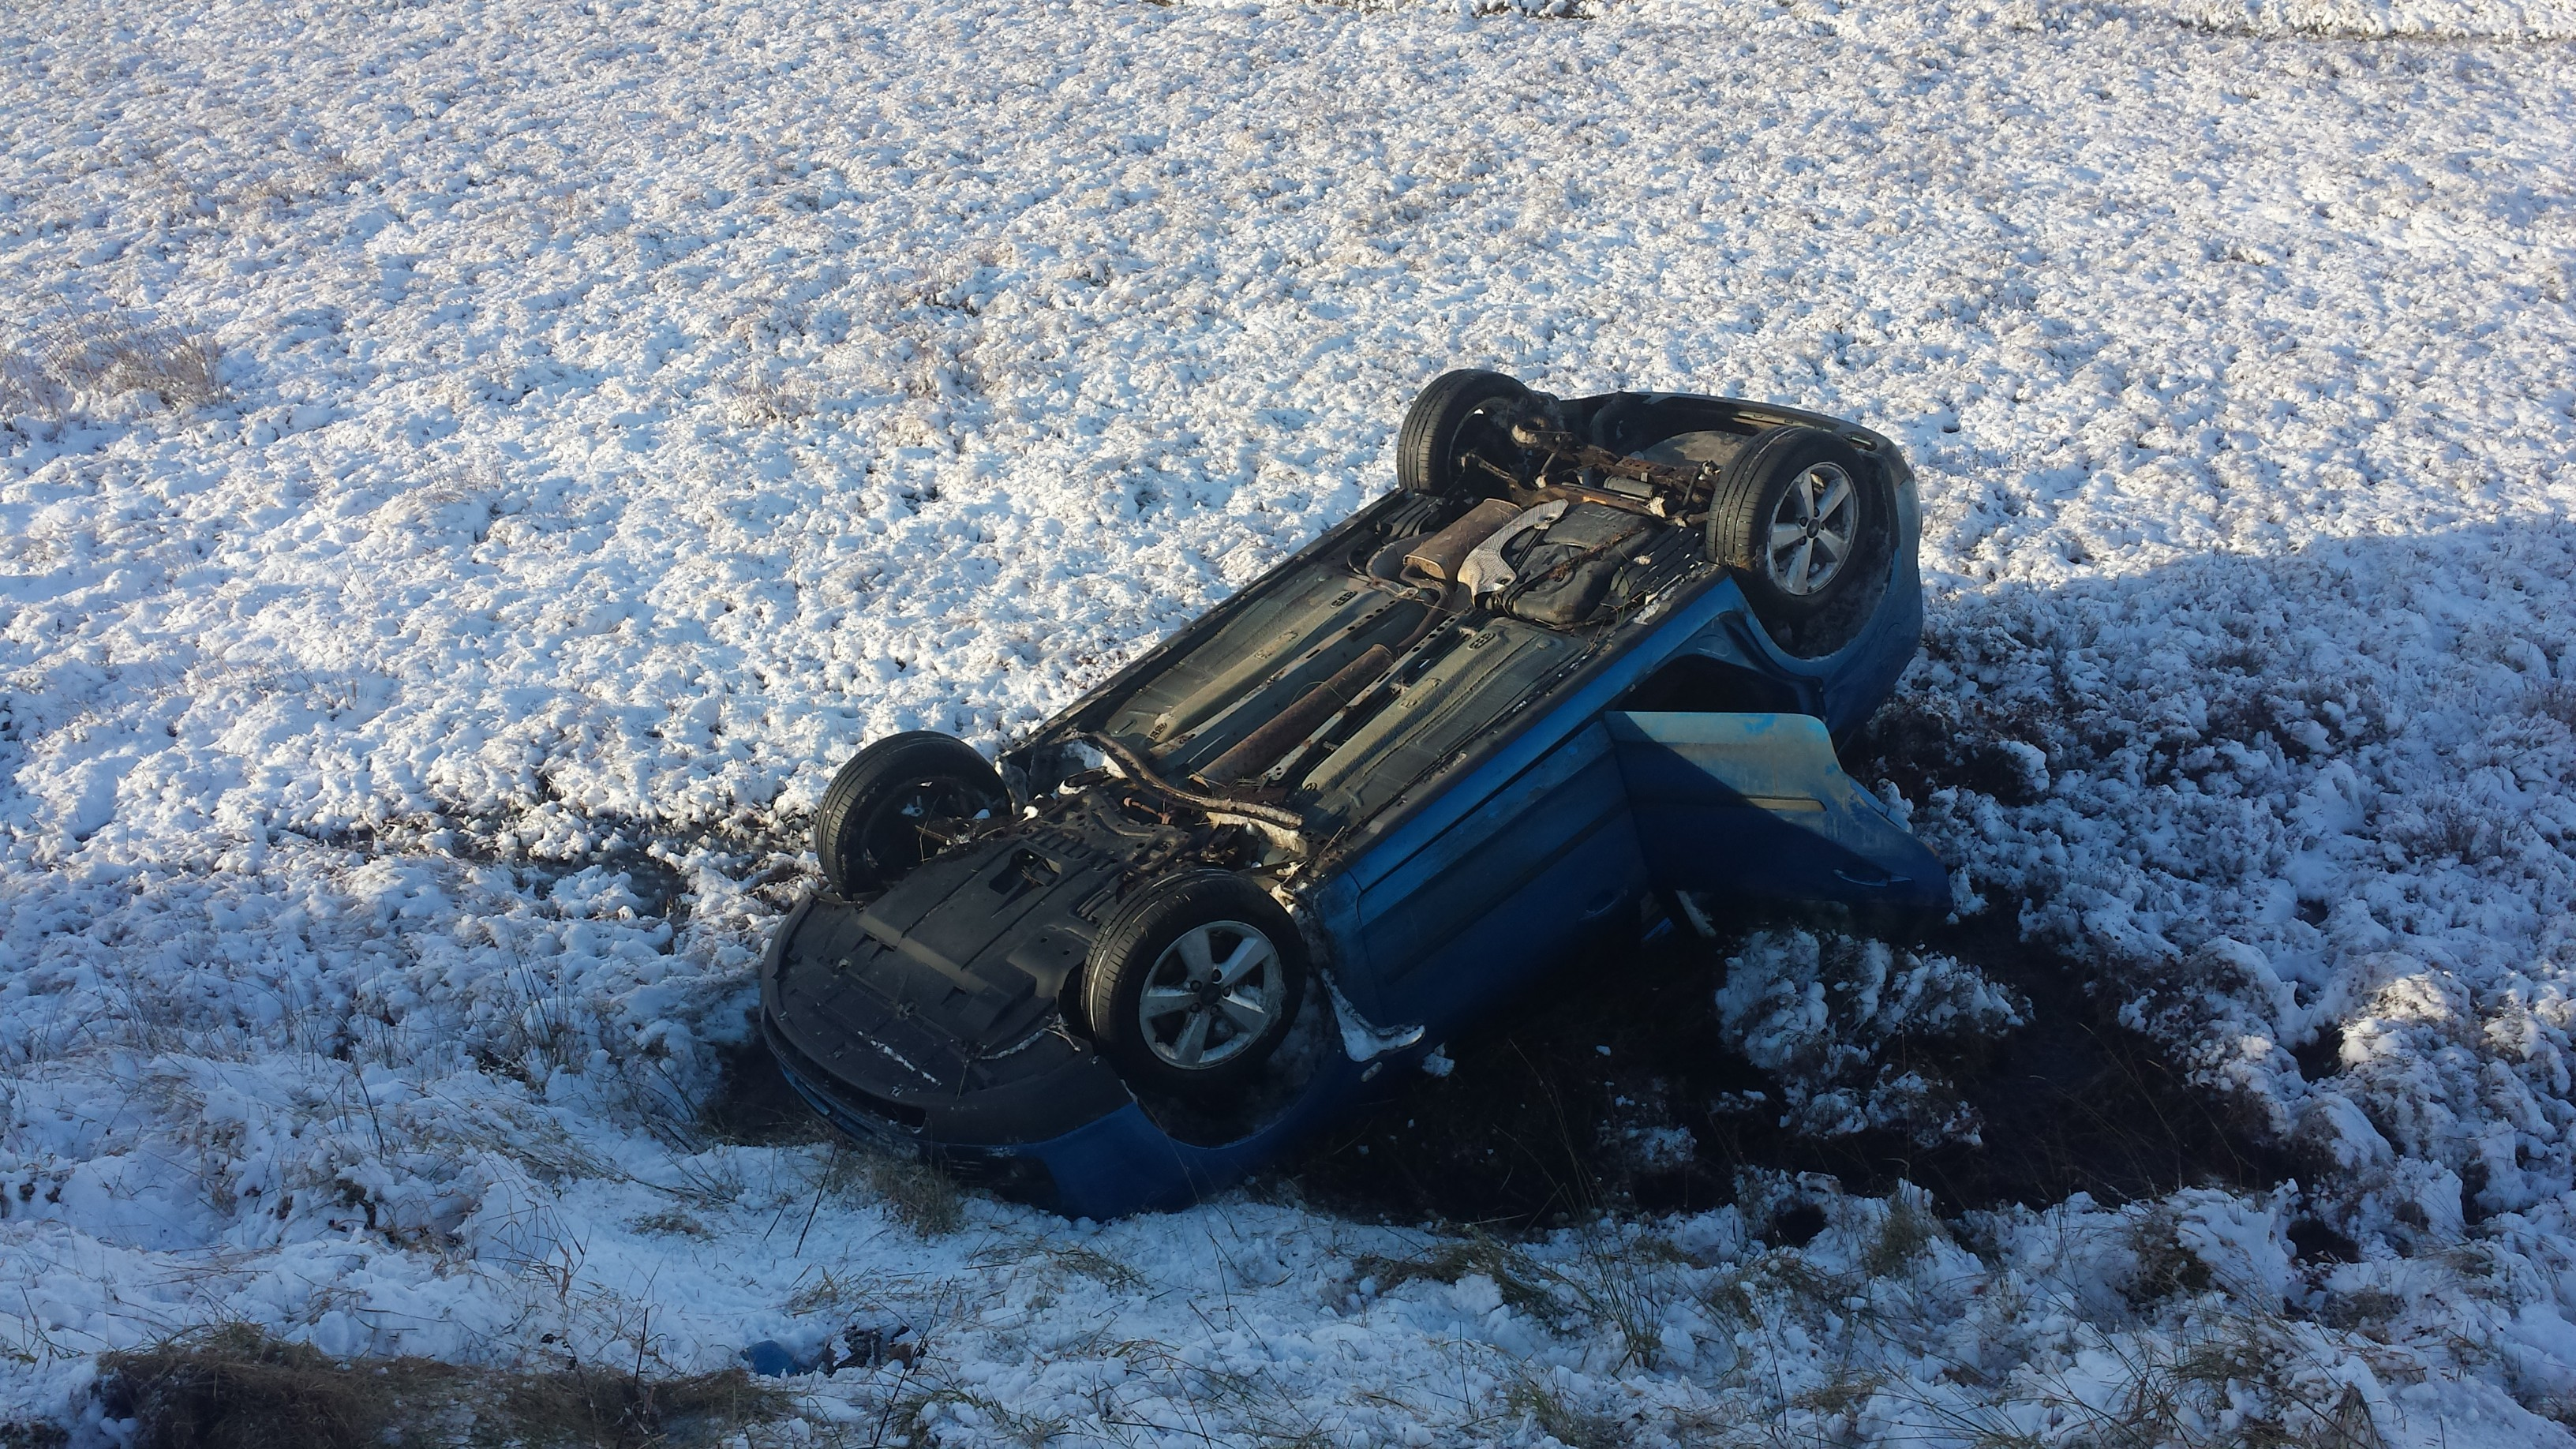 The family were trapped in their overturned car until passersby helped them out.